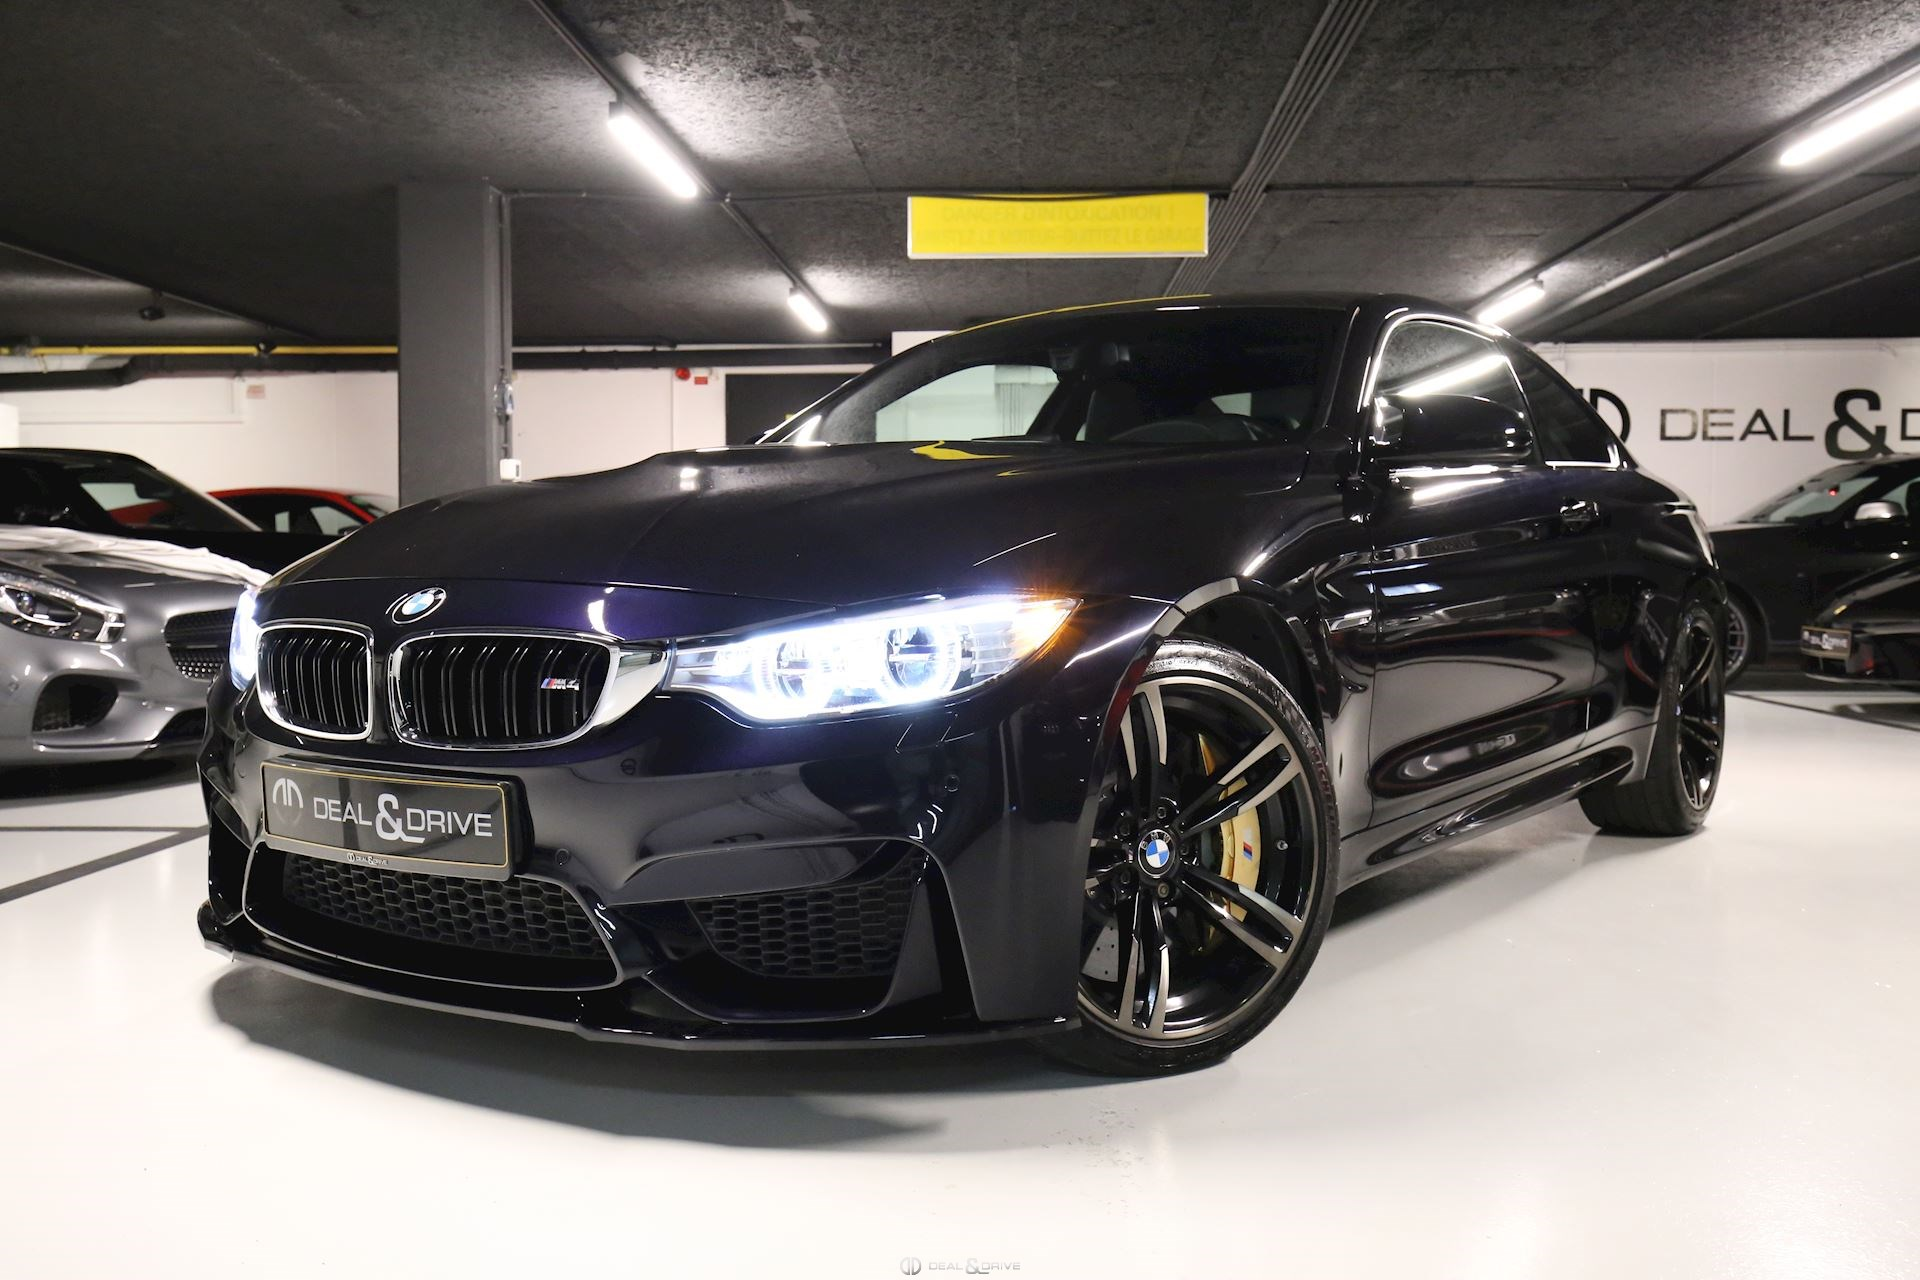 BMW M4 Coupe Deal & Drive